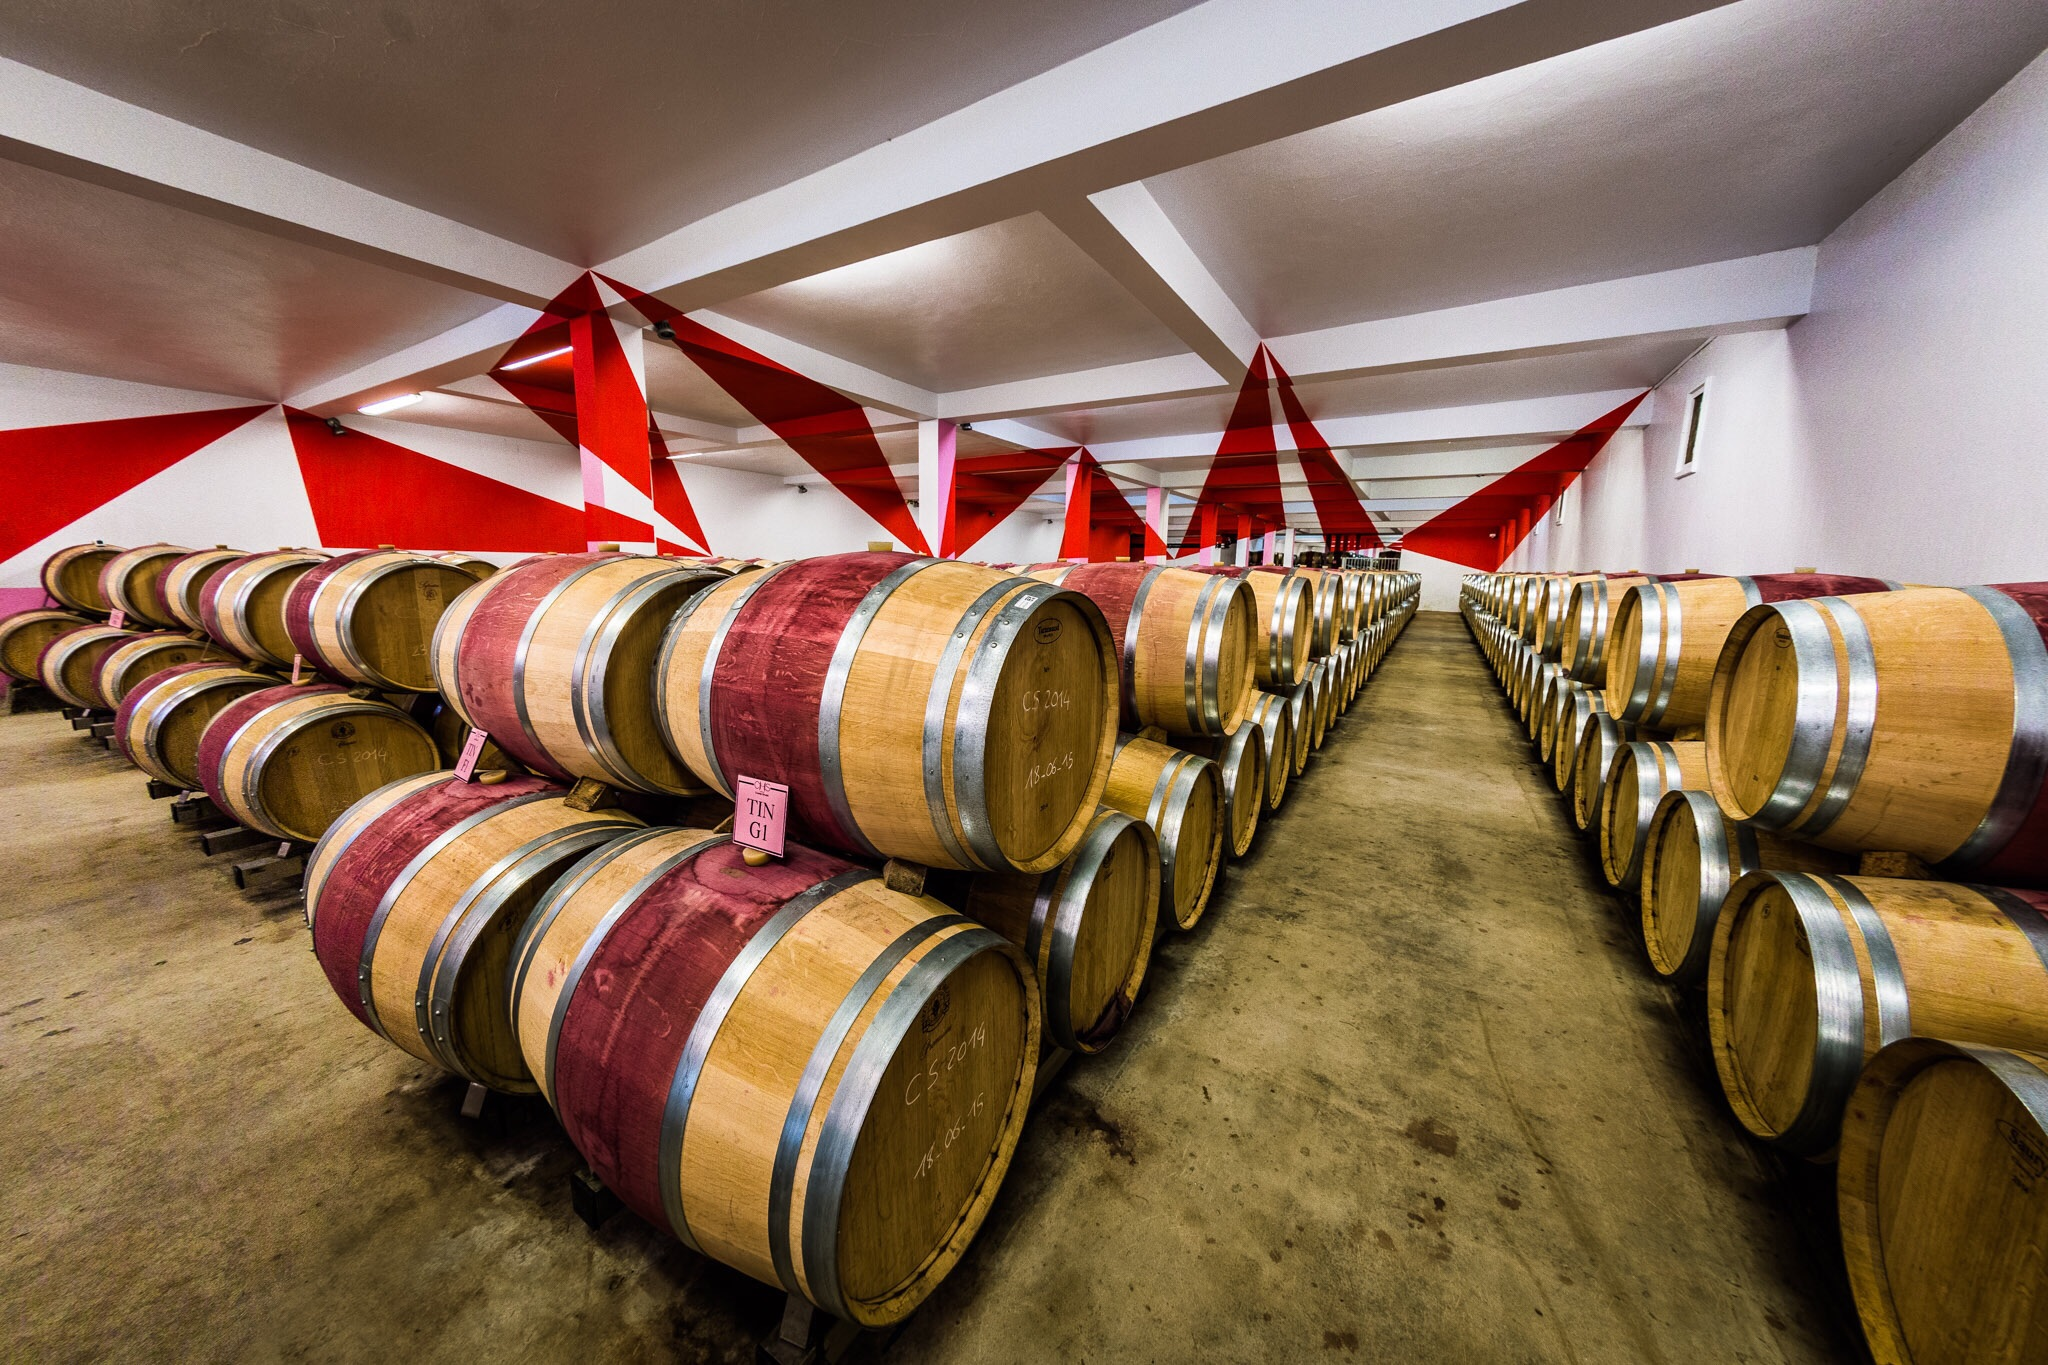 Interior photography shot of a barrel store in Bordeaux